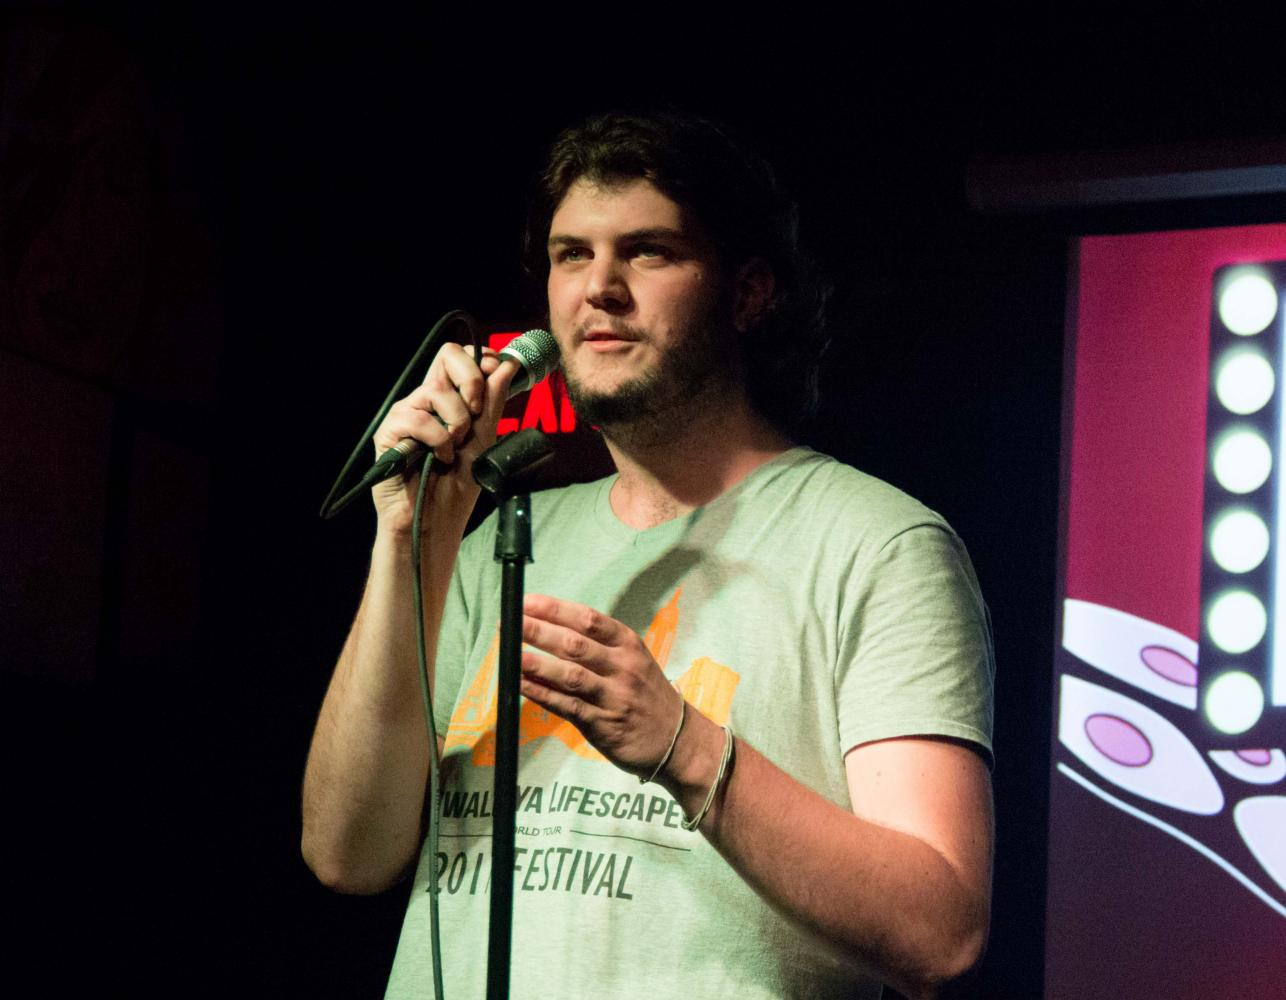 Senior jazz studies major Clayton Ryan was one of two UNI students who performed stand-up at Octopus Comedy Night this past Wednesday at the Octopus on College Hill.